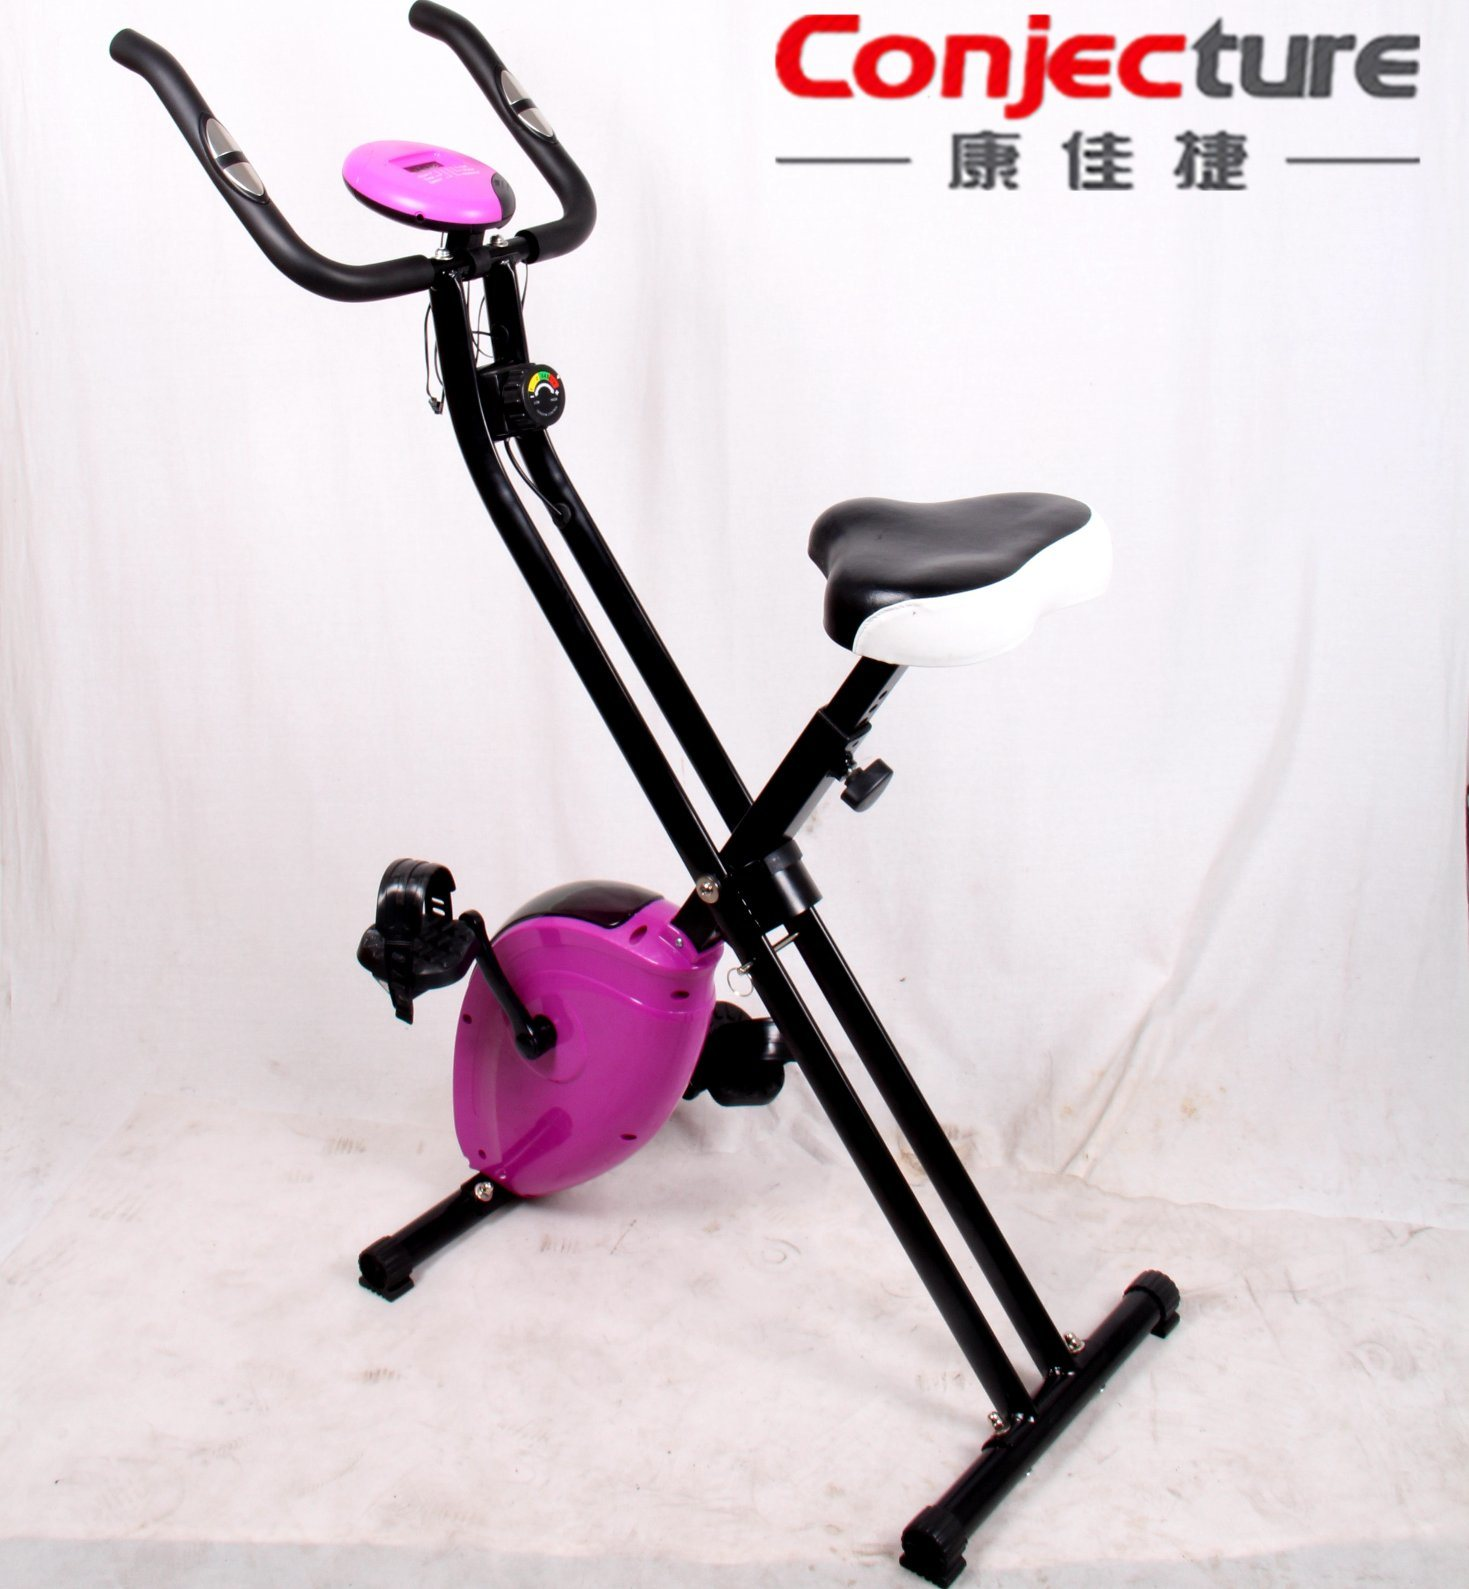 Conjecture Sports Magnetic Exercise Bike, Gym Fitness Exercise Bike